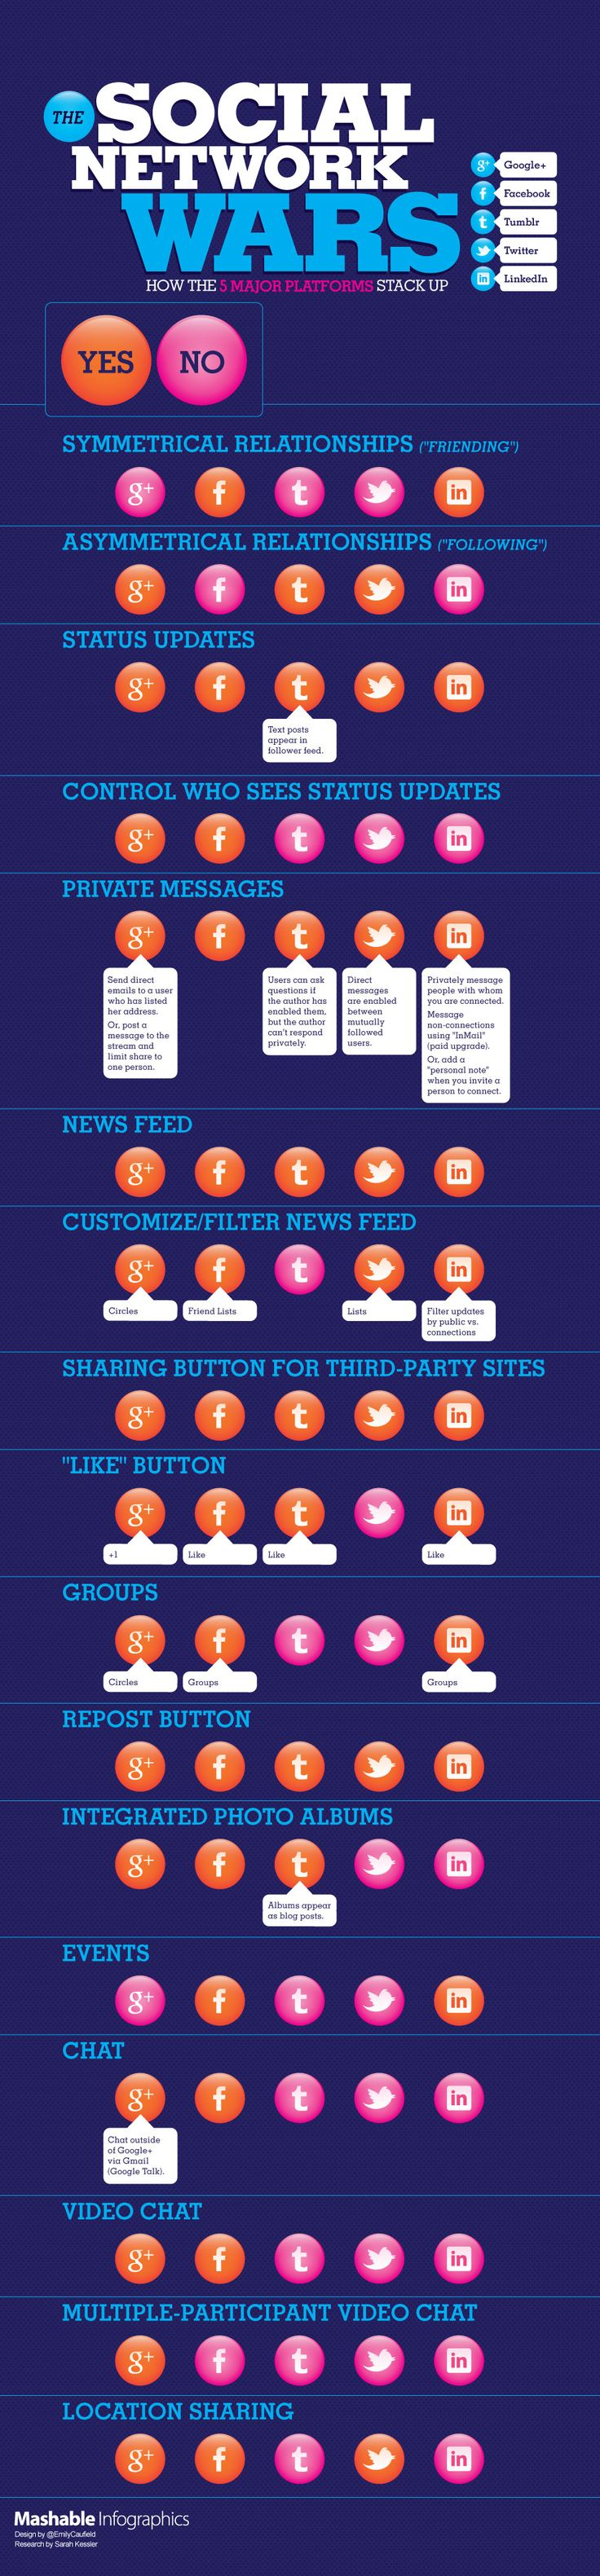 Funktionsvergleich der Social Media Plattformen Facebook, Google+, LinkedIn, Tumblr, TwitterSocial Media, Media Wars, The Social Network, Media Infographic, Social Networks, Network Comparison, Socialmedia, Comparison Charts, Network Wars